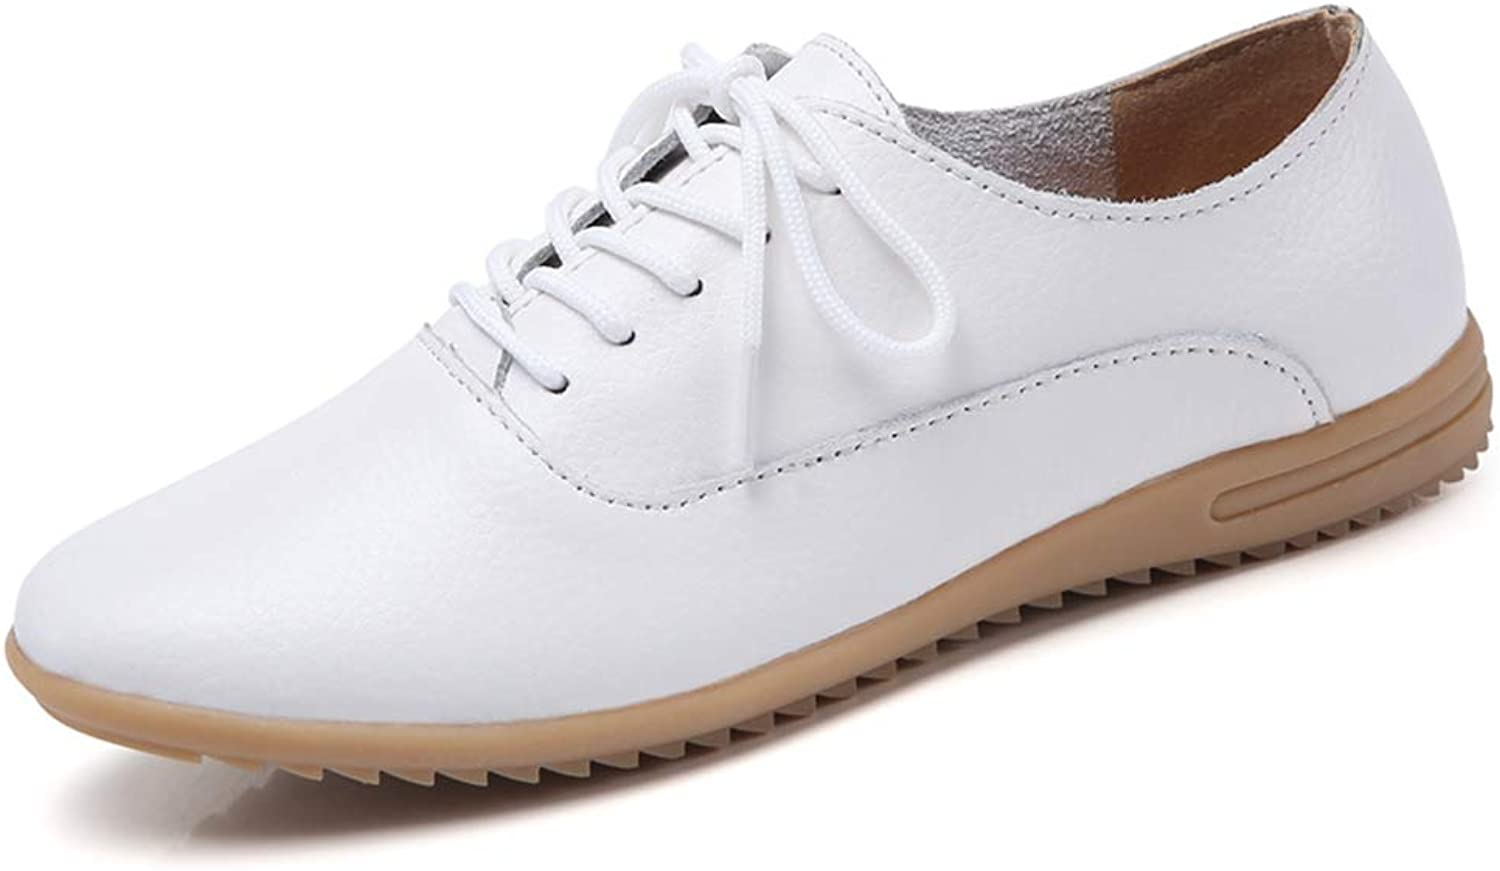 T-JULY Spring Women Lace-up Ballet Flats Leather Loafers Ladies Ballerines Flats shoes